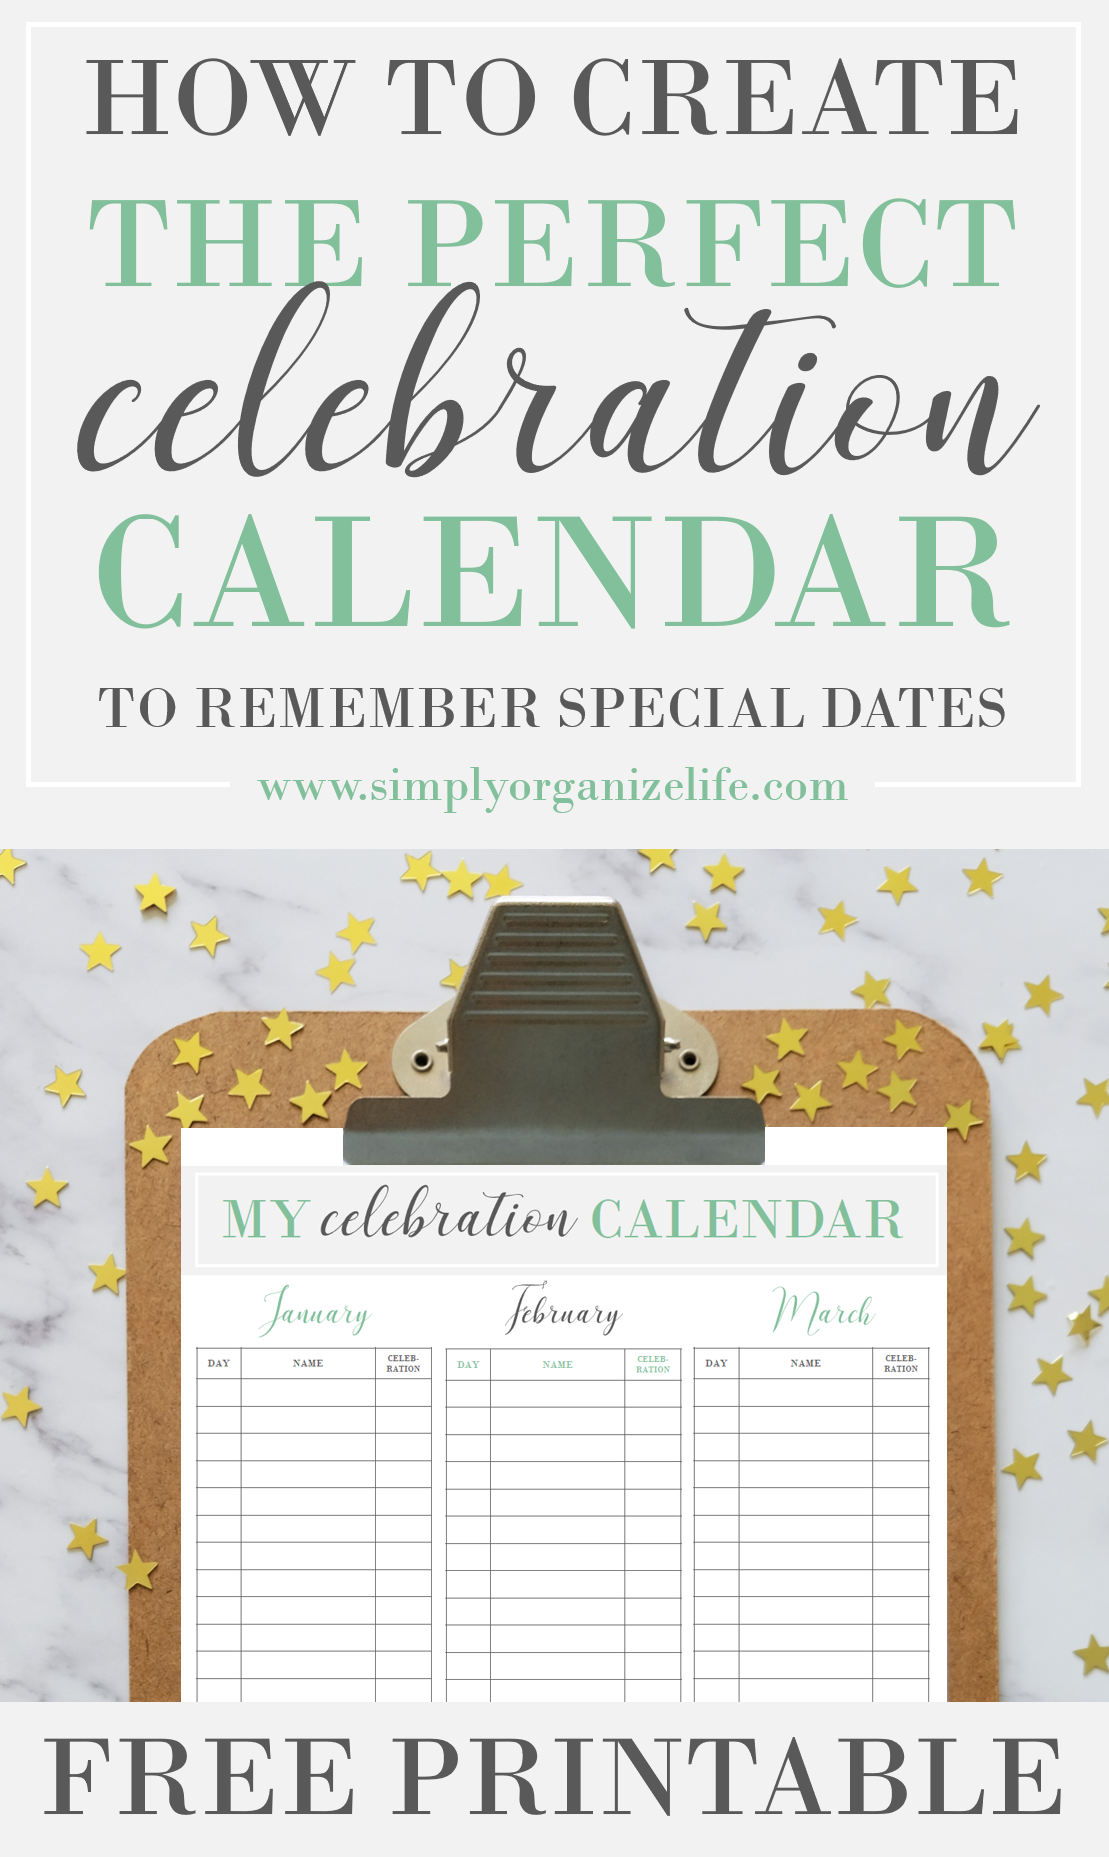 How to Create the Perfect Yearly Celebration Calendar {FREE PRINTABLE}